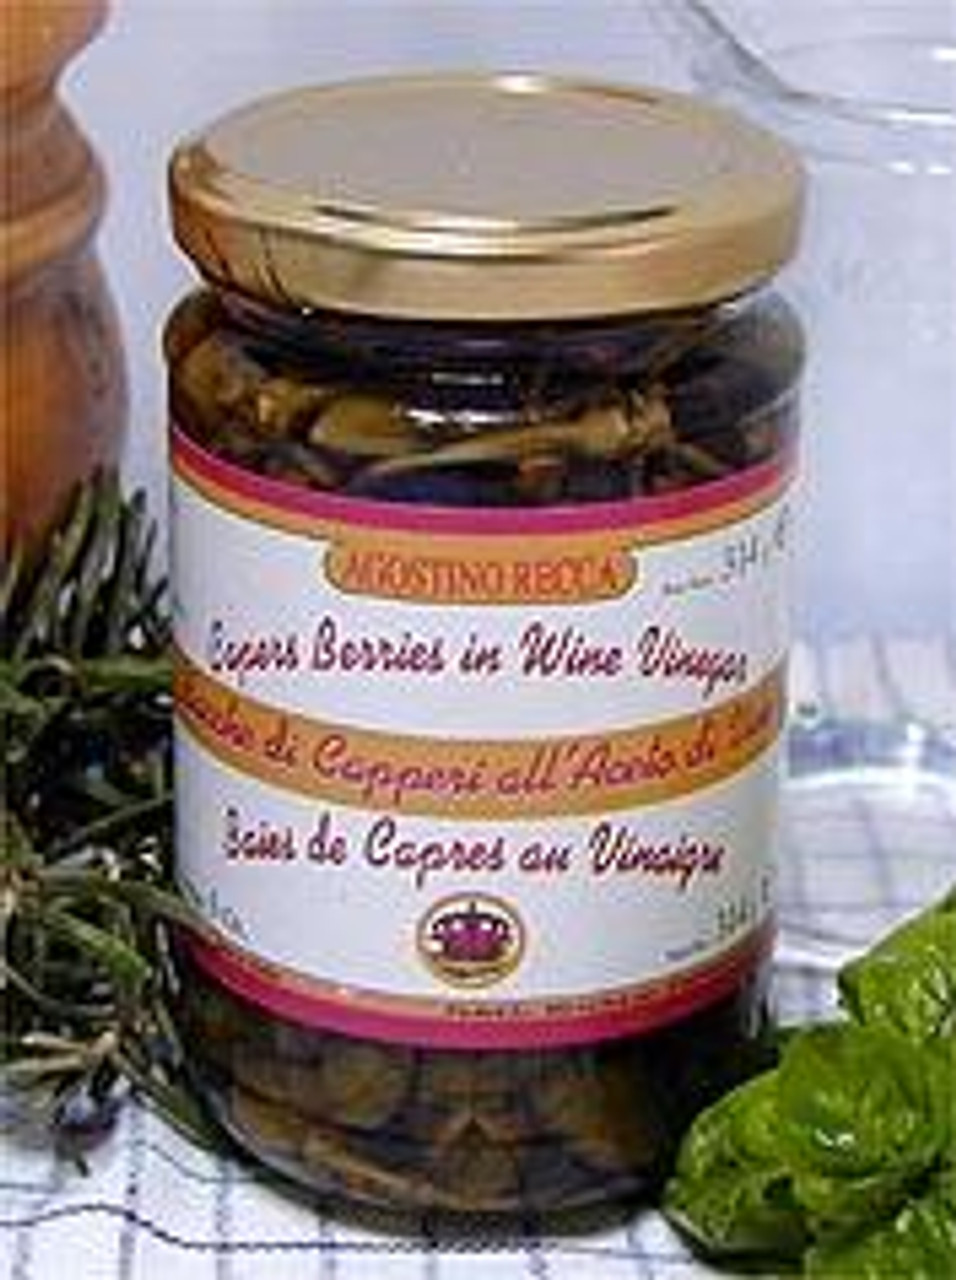 Capers Berries in Wine Vinegar